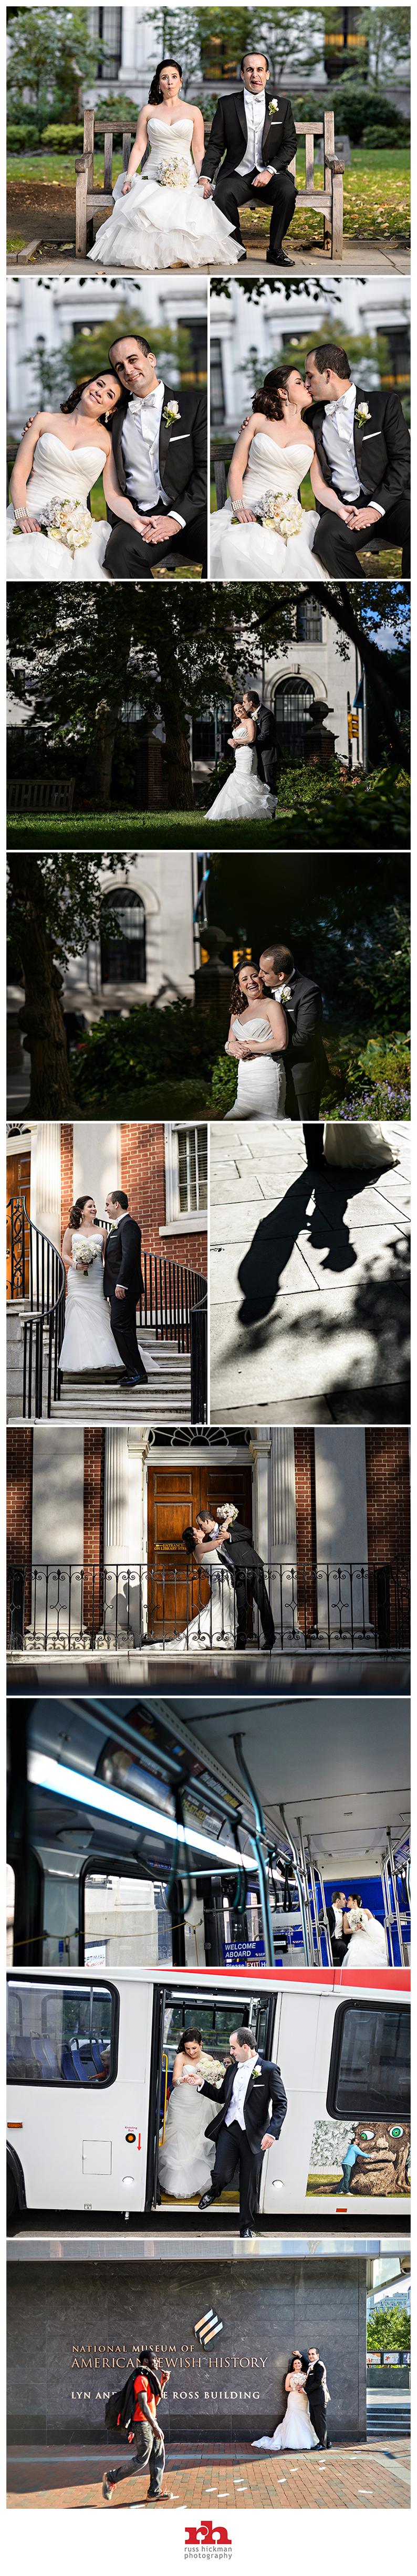 Philadelphia Wedding Photographer JAWBlog008